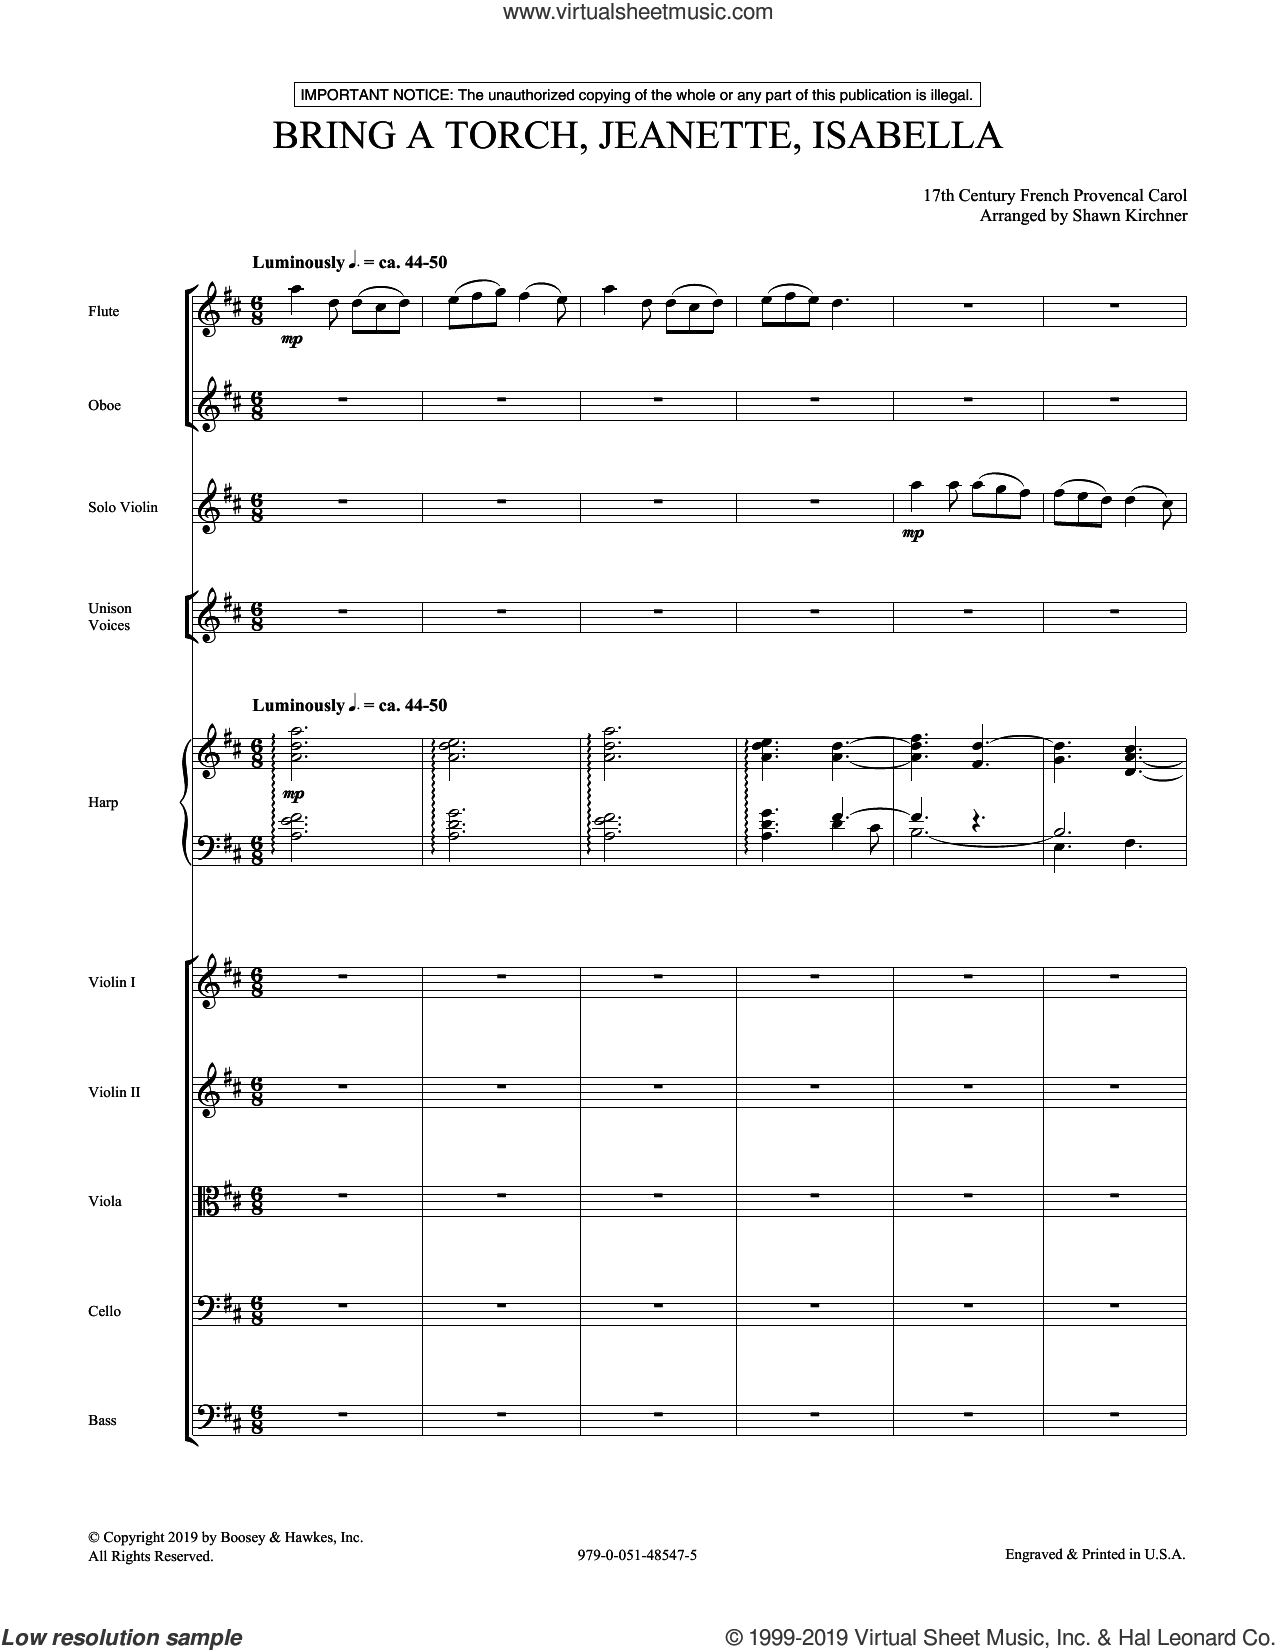 Bring a Torch, Jeanette, Isabella (arr. Shawn Kirchner) (COMPLETE) sheet music for orchestra/band by Shawn Kirchner and 17th Century French Provencal, intermediate skill level